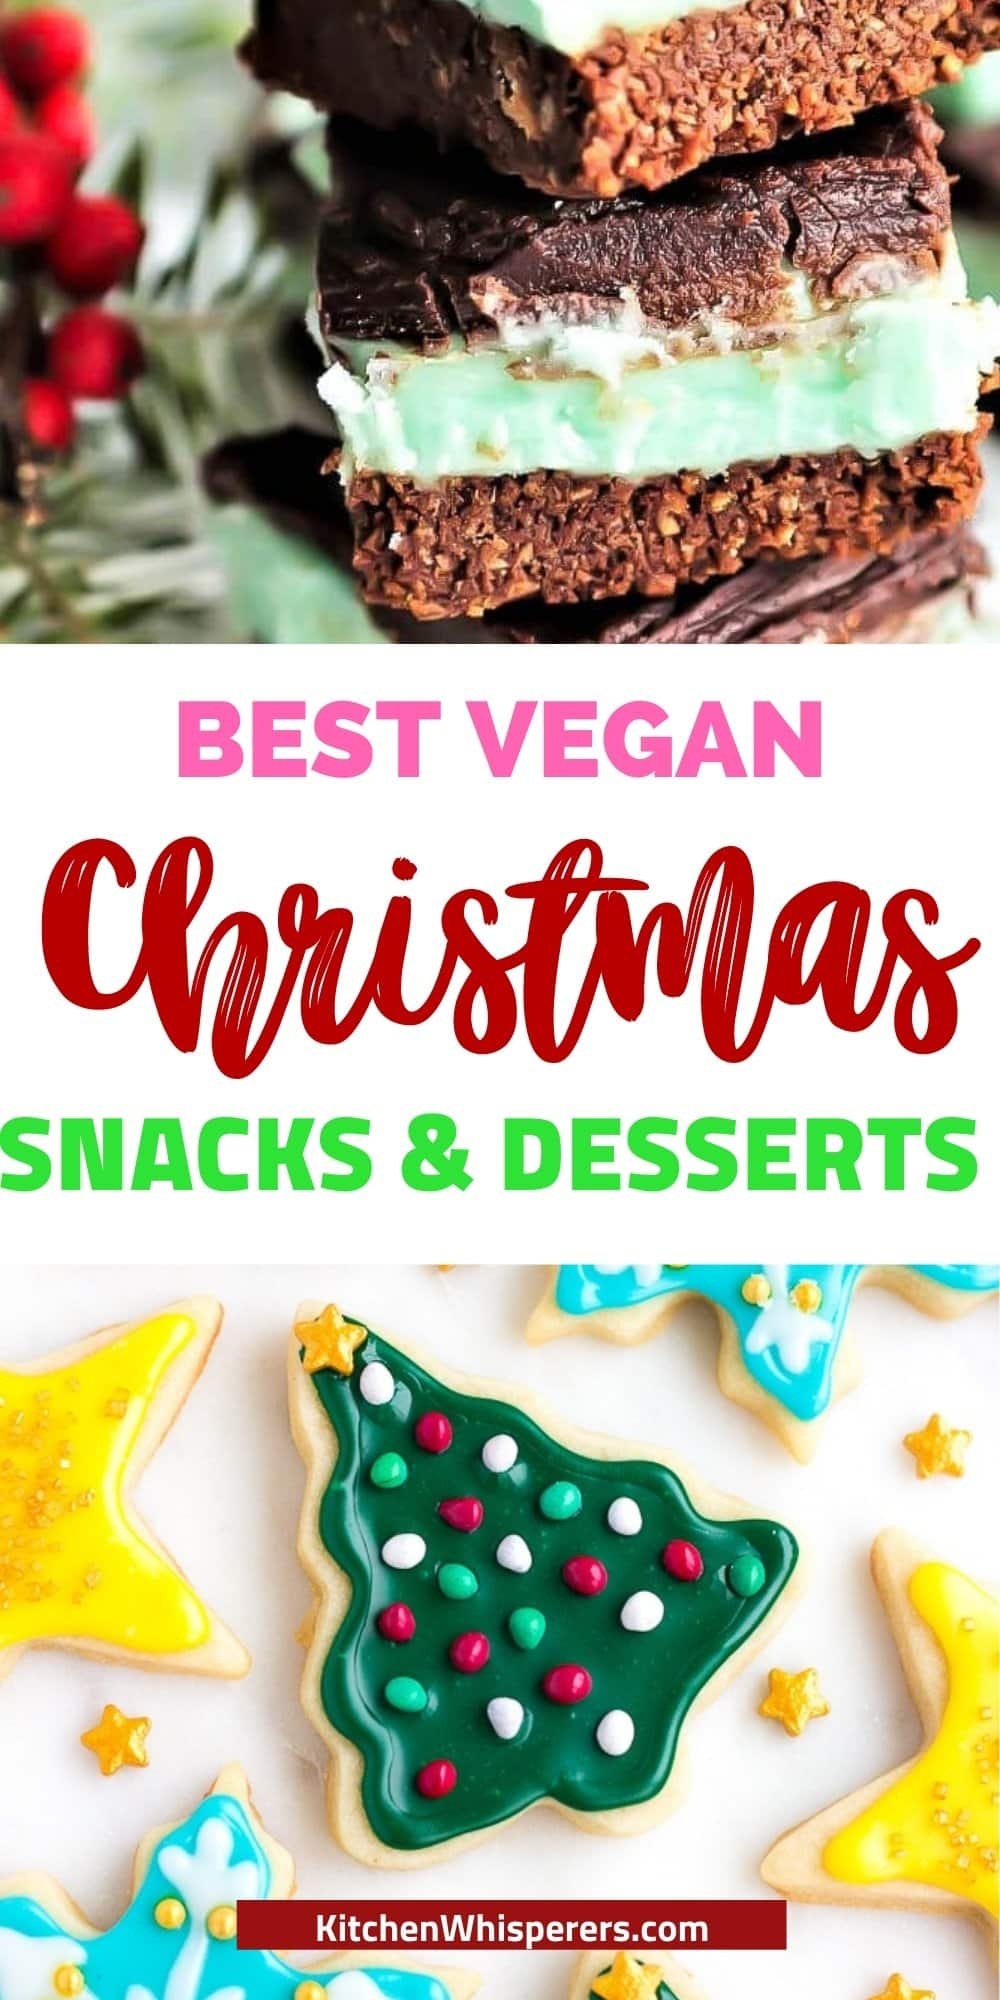 best Christmas snacks and desserts for vegans